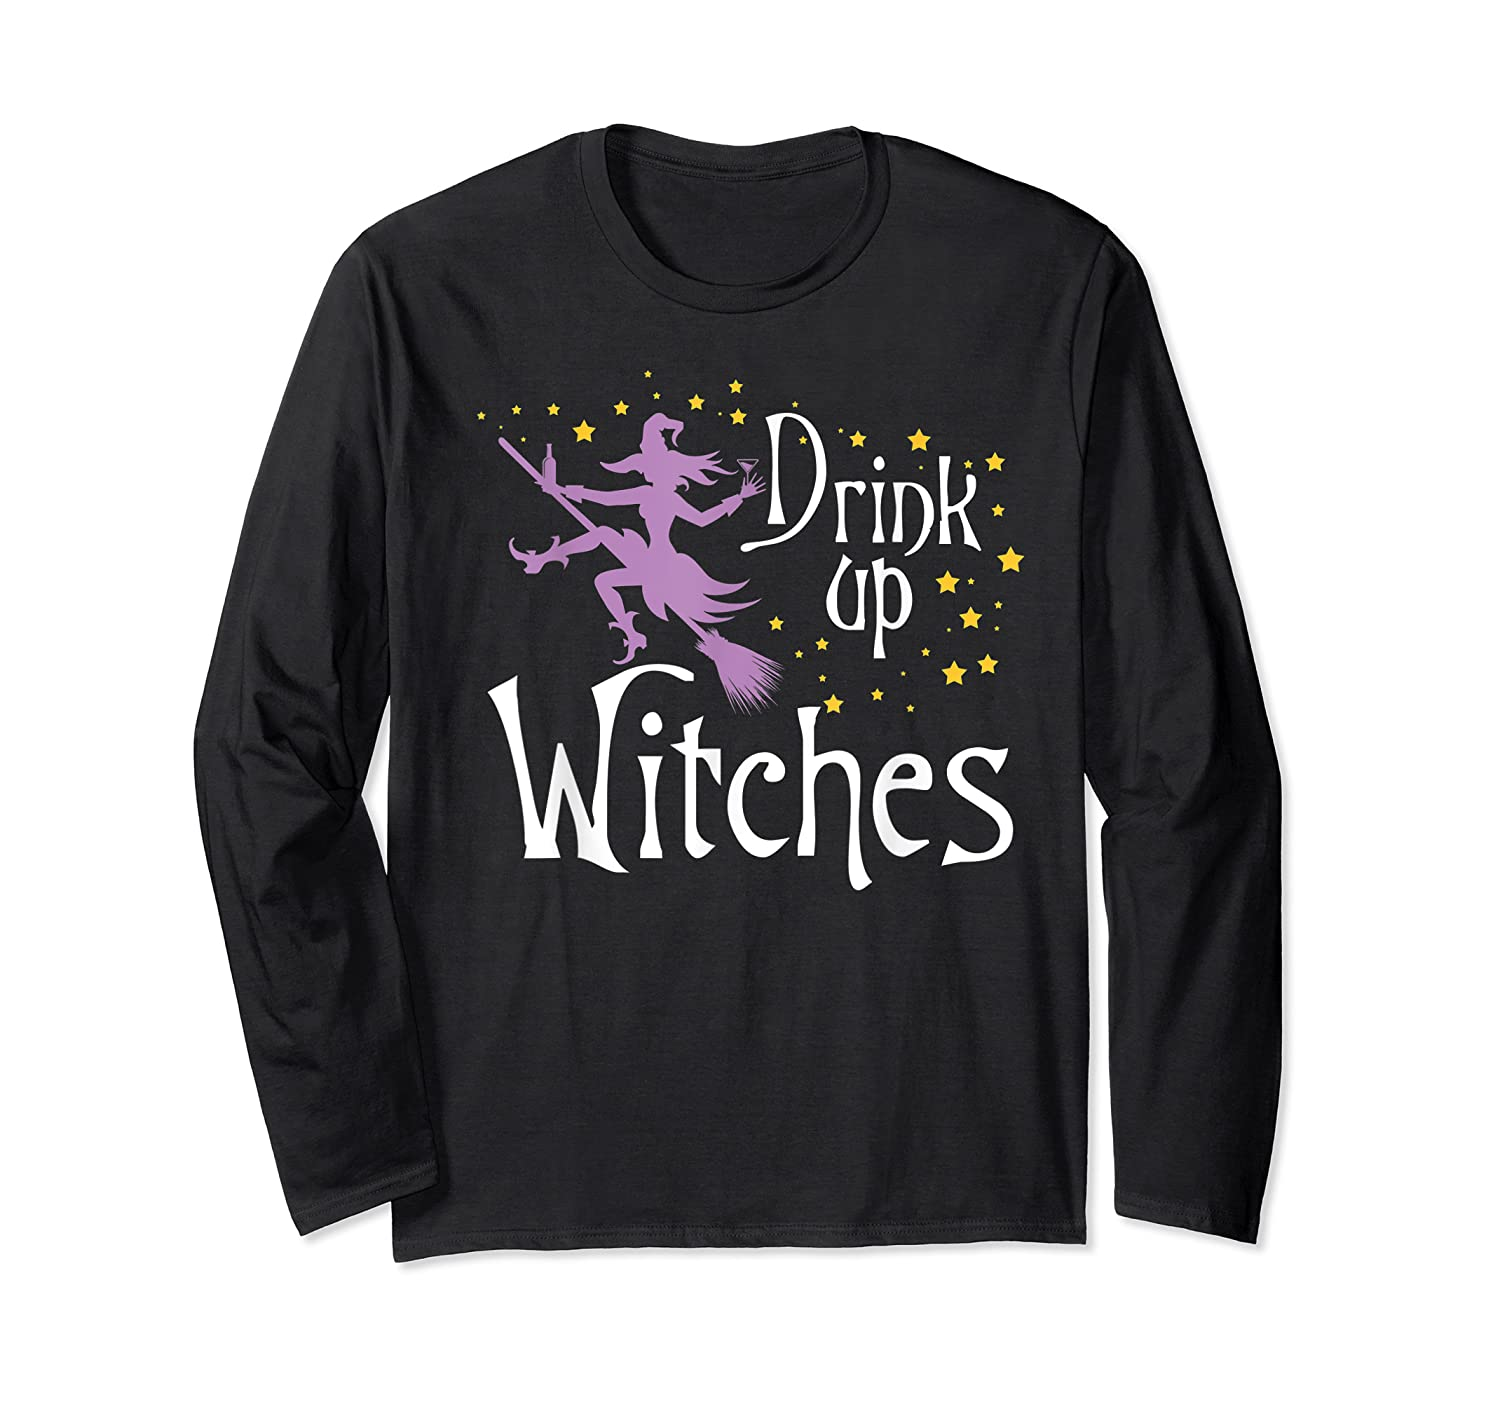 Drink Up Witches T-shirt For Halloween Drinking T-shirt Long Sleeve T-shirt